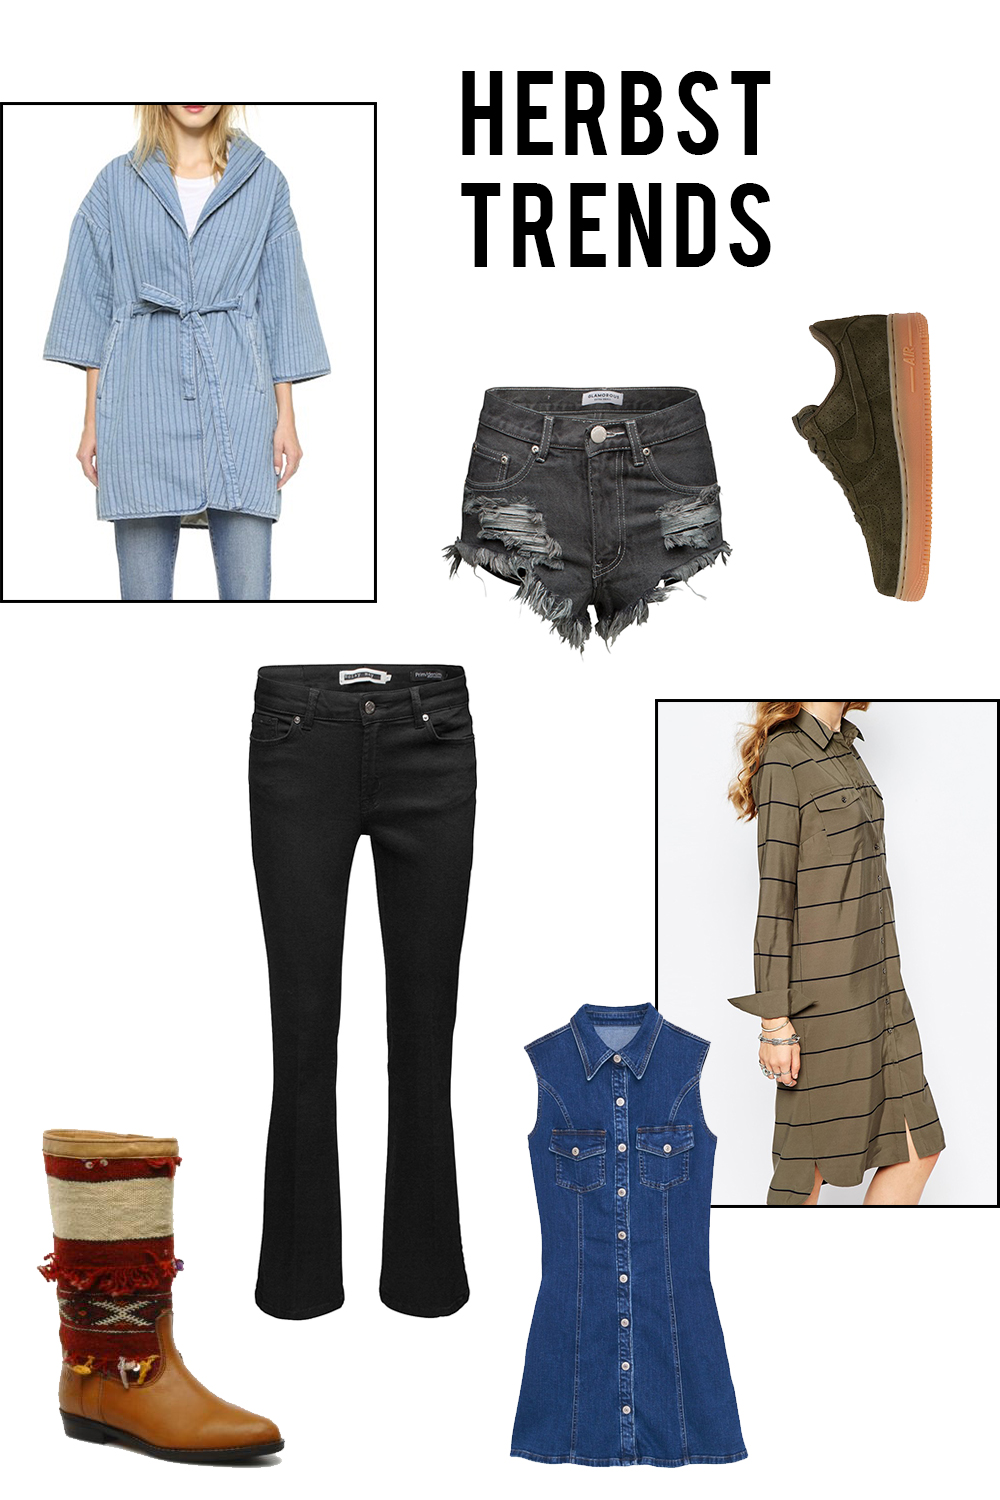 Weekly Wishlist Herbst Trends: Suede, Denim, Khaki, Boho-Prints